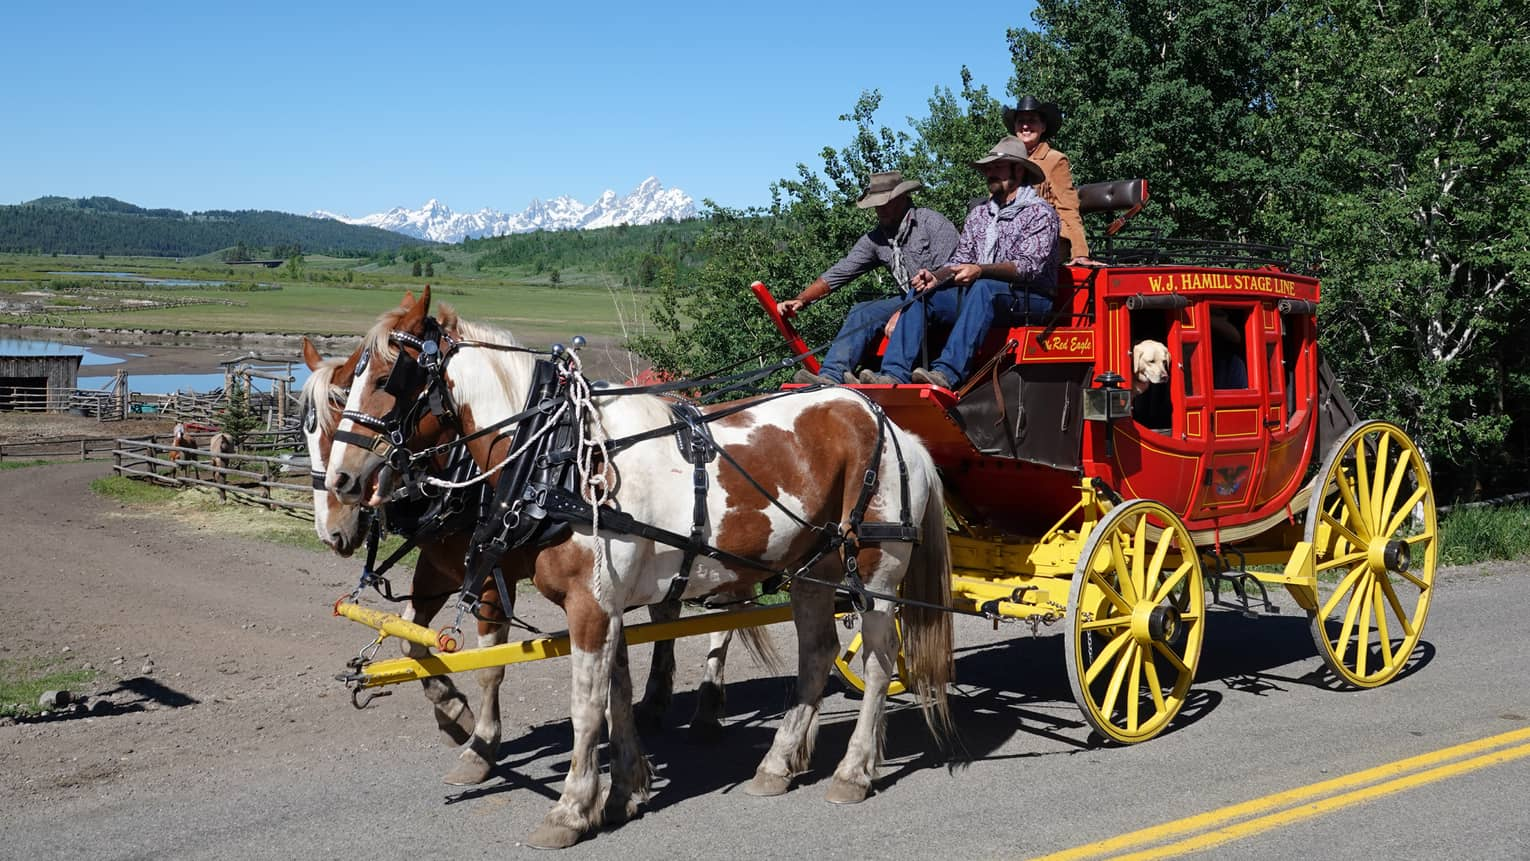 A red stagecoach with yellow wheels pulled by two chestnut-and-white draft horses